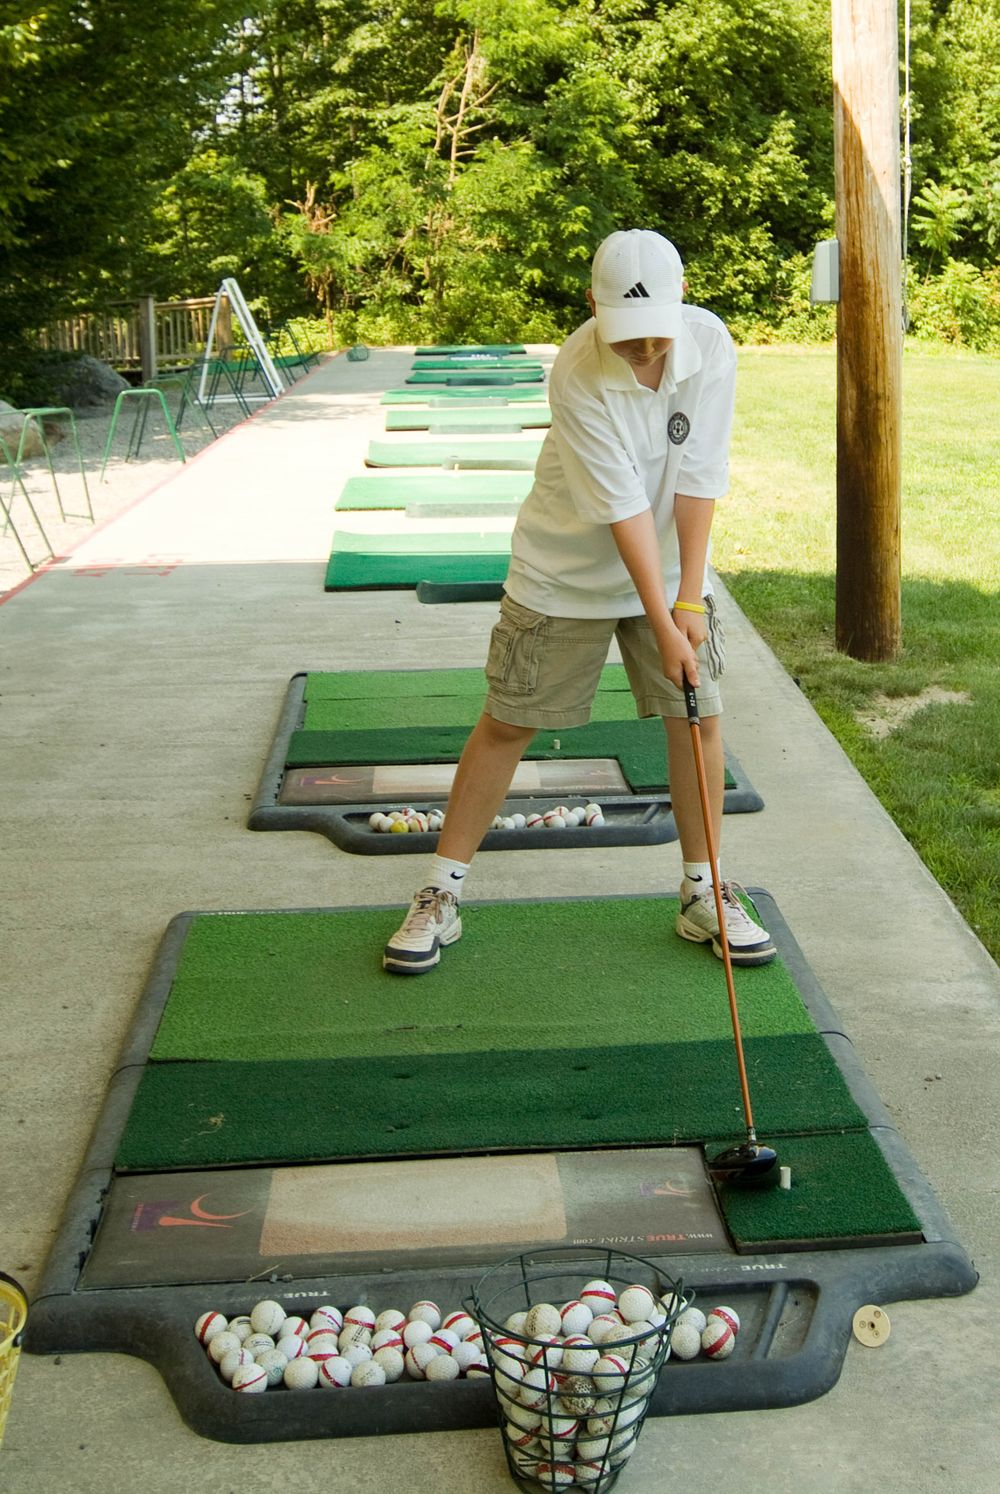 Getting Work Done On The Driving Range Driving Range Golf Tips Driving Golf Driving Range